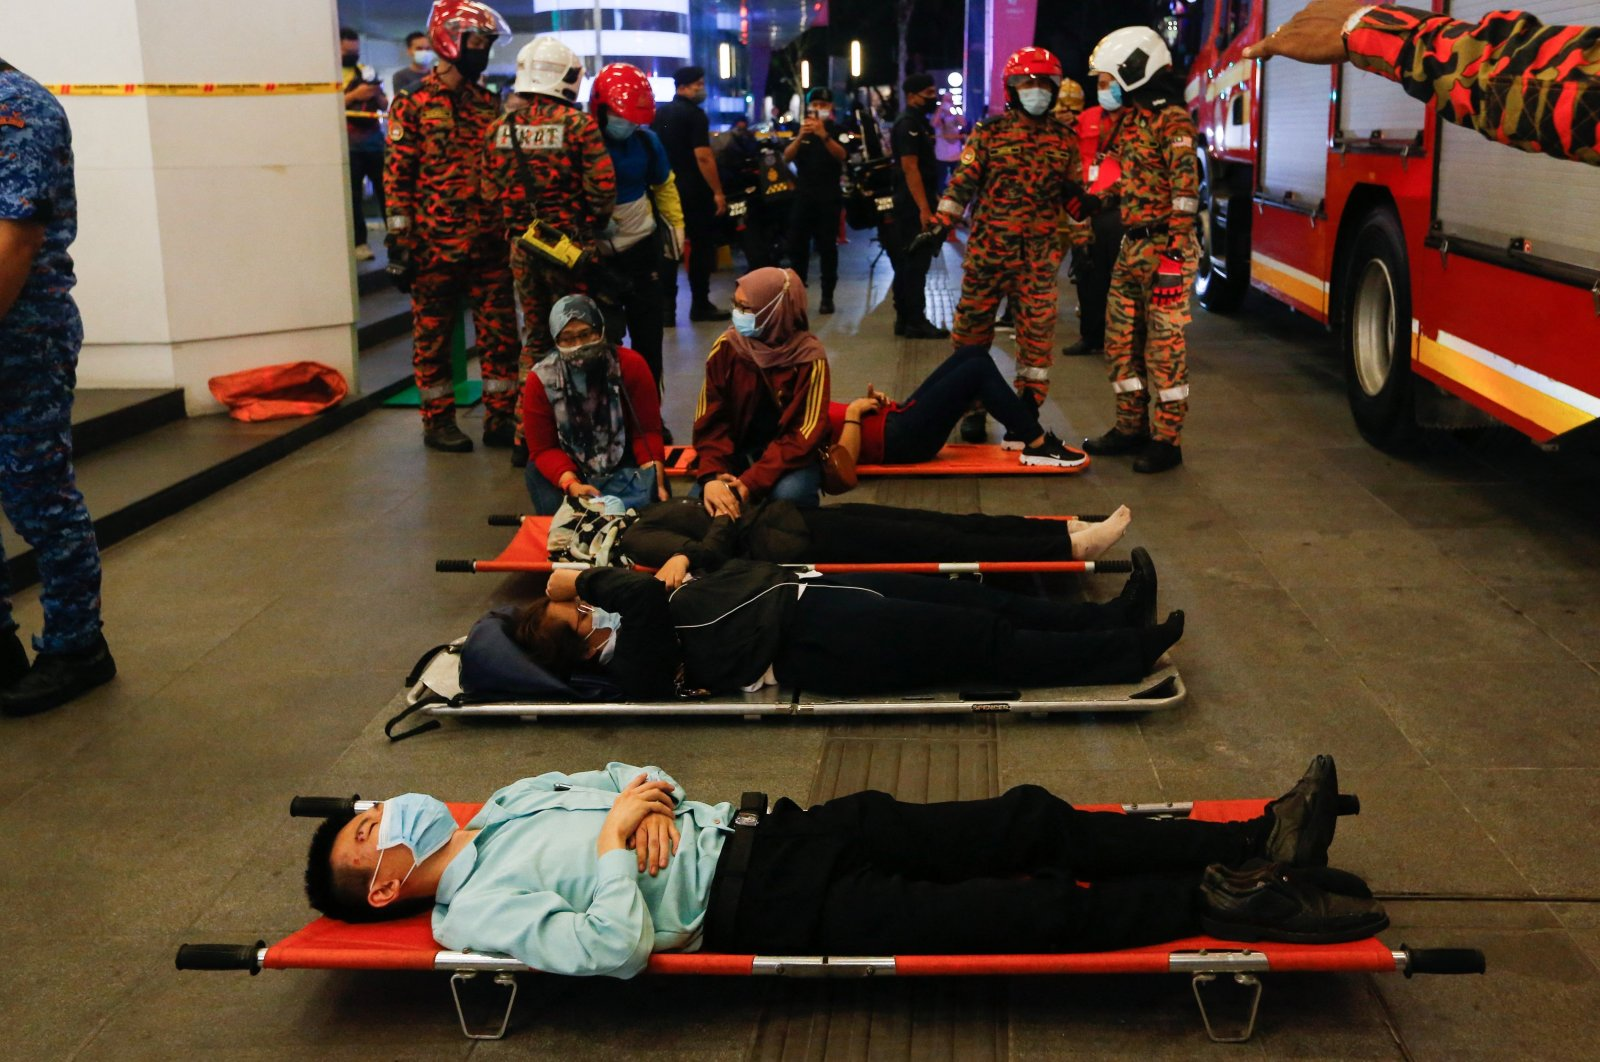 Injured passengers lie on stretchers outside KLCC station after an accident involving two Light-Rail Transit (LRT) trains in Kuala Lumpur, Malaysia, May 24, 2021. (AFP Photo)